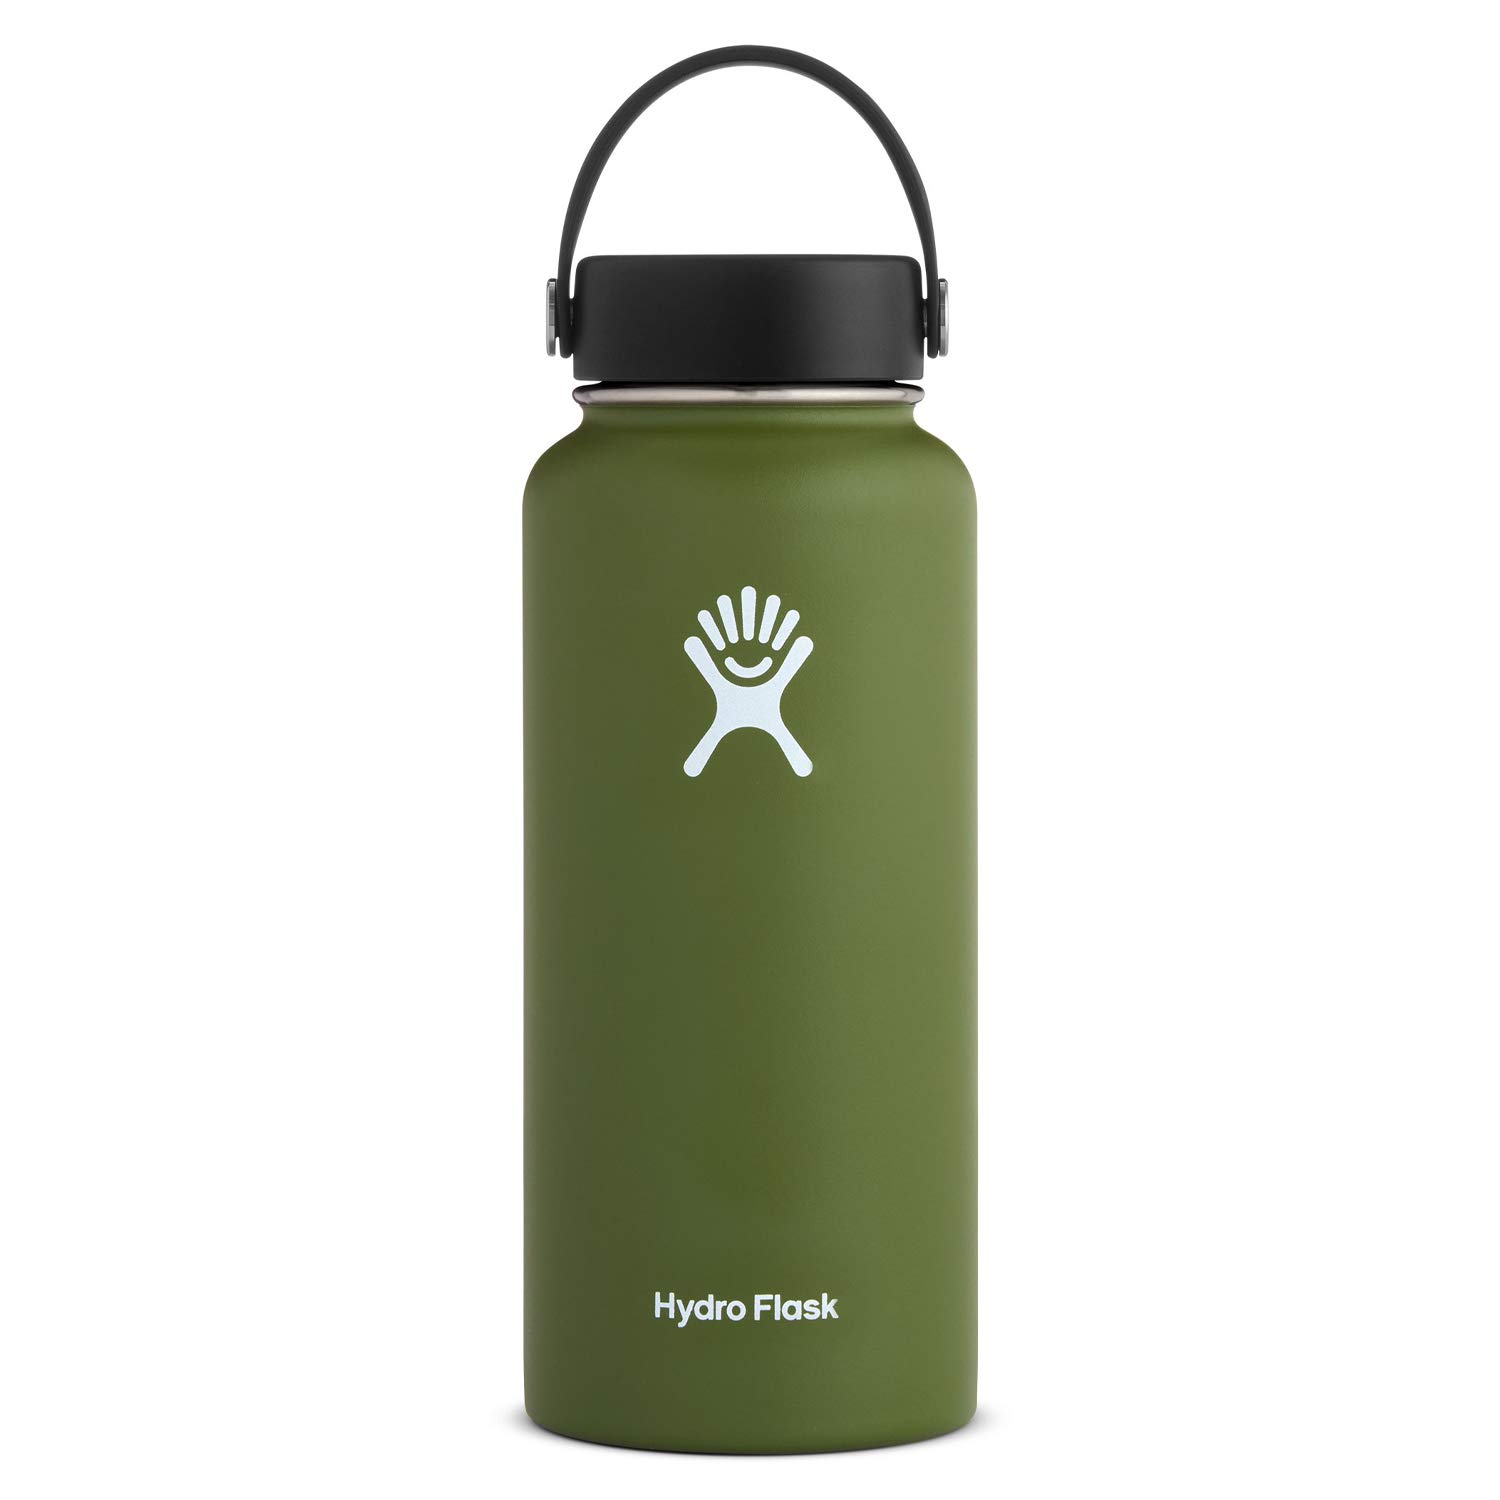 Hydro Flask Water Bottle - Stainless Steel & Vacuum Insulated - Wide Mouth with Leak Proof Flex Cap - 32 oz, Olive